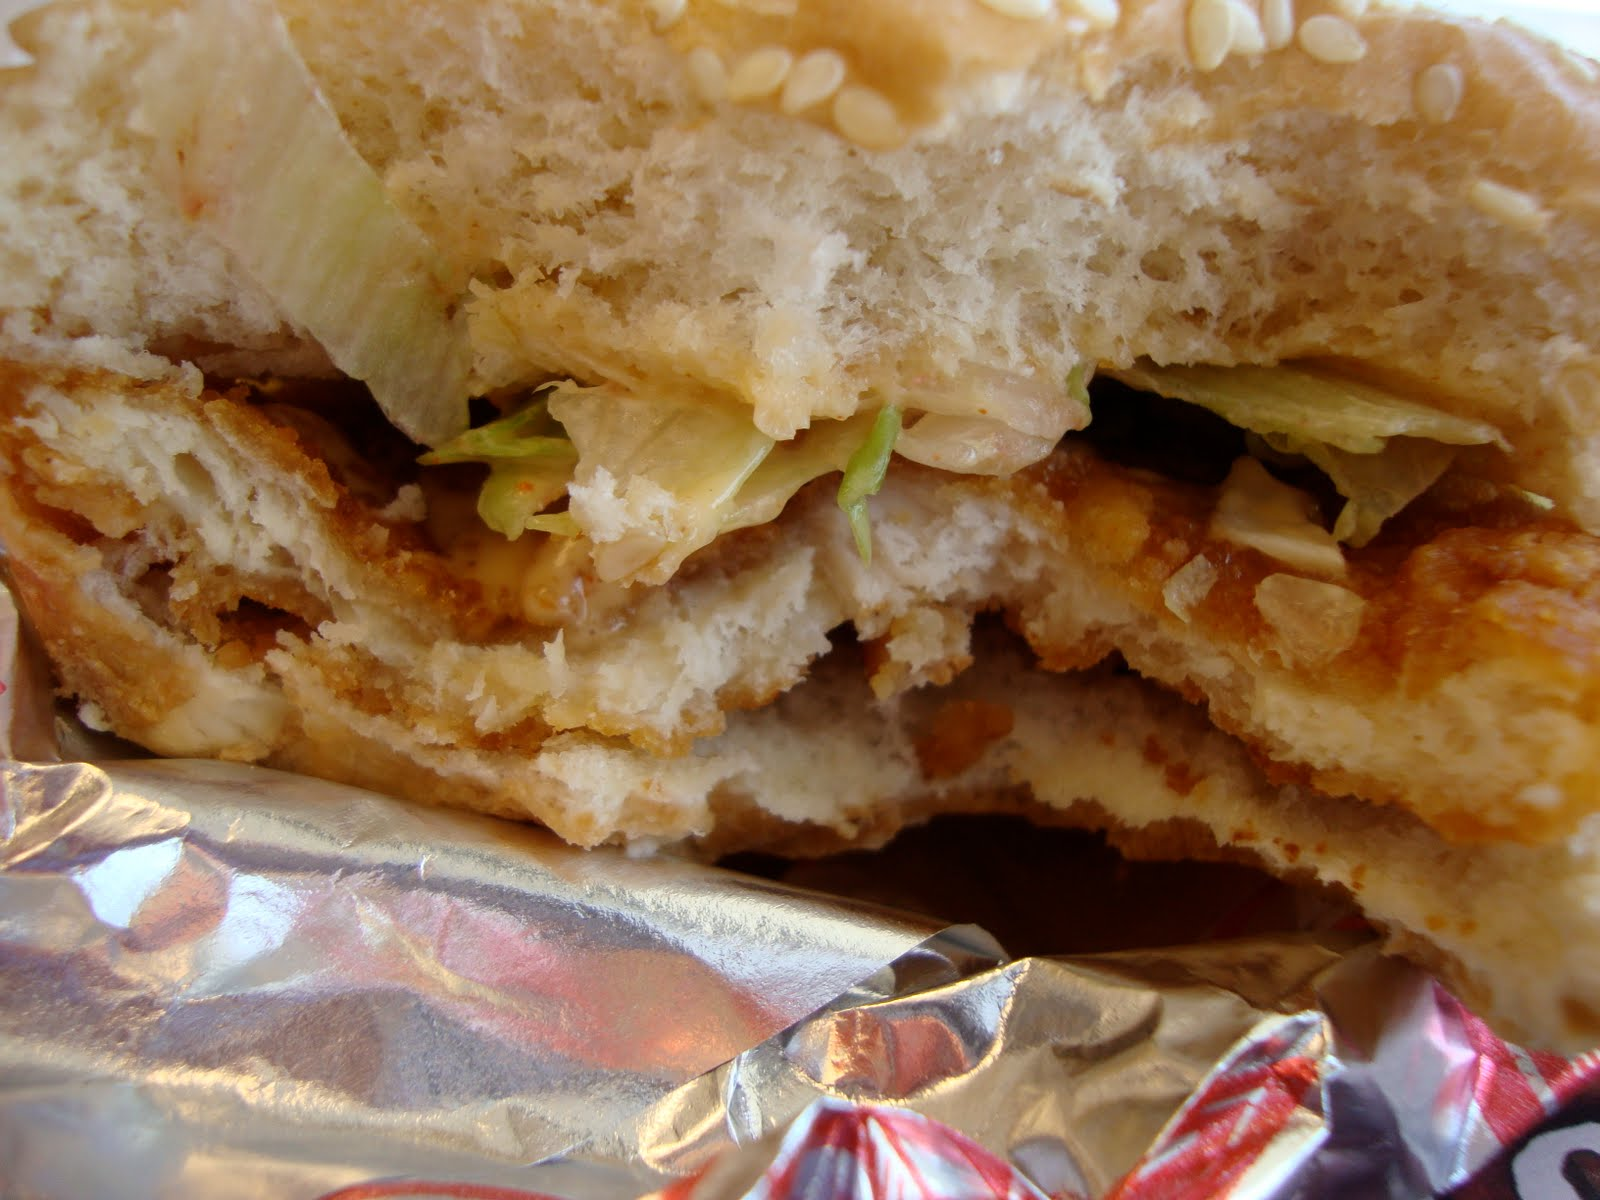 Pleased With My Recent Experiences Churchs I Decided To Try Their 99 Cent Chicken Sandwich Too Was Actually Given The Choice Of Regular Or Spicy